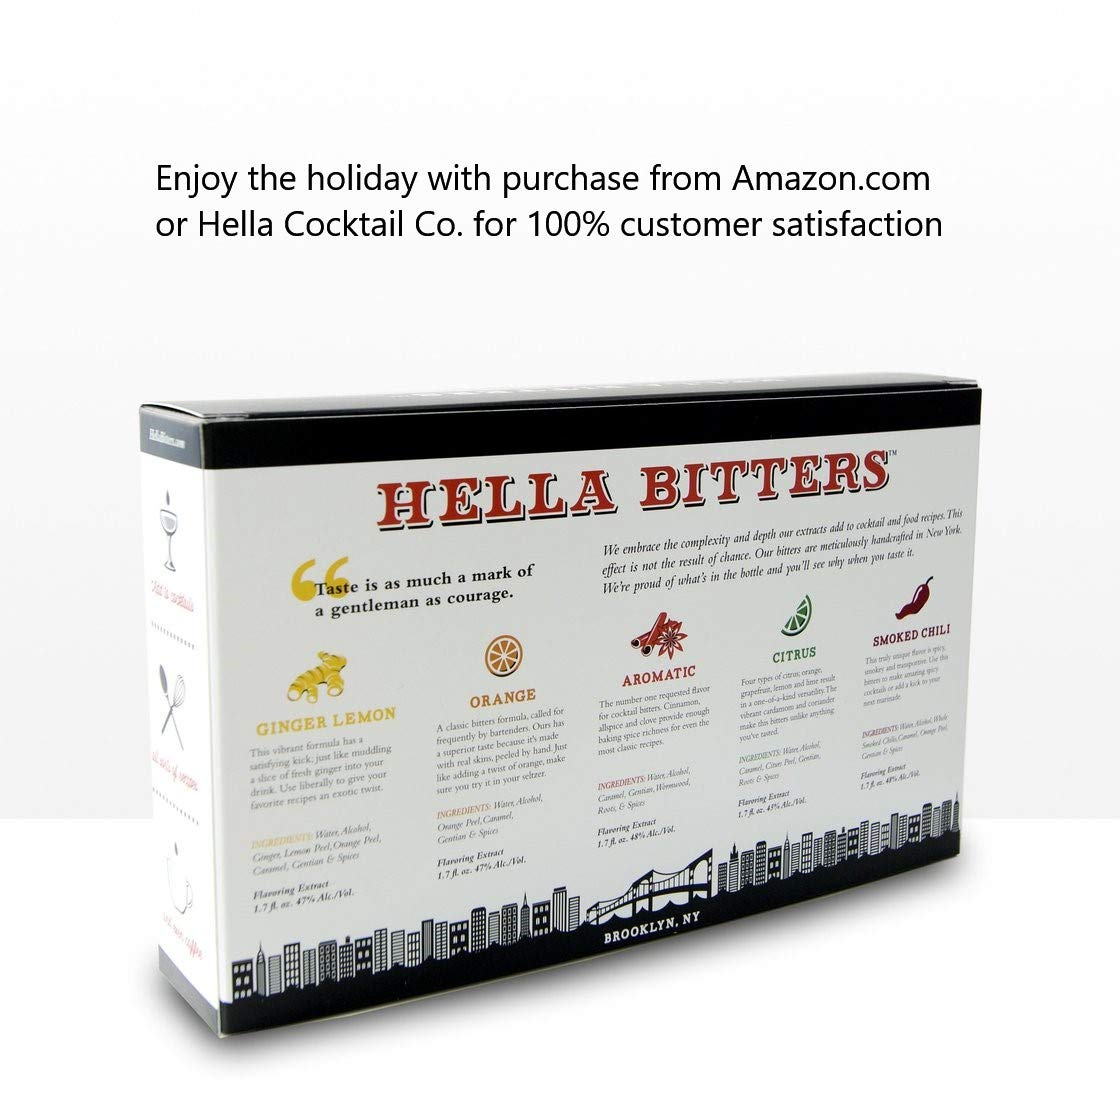 Hella Cocktail Co. | 5 Pack Bitters bar Set, 8.5 oz total | Craft Aromatic, Orange, Ginger, Citrus, Smoked Chili Cocktail Bitters made with Real Fruit Peel & Whole Spices - For the Homebar by Hella Cocktail Co. (Image #3)